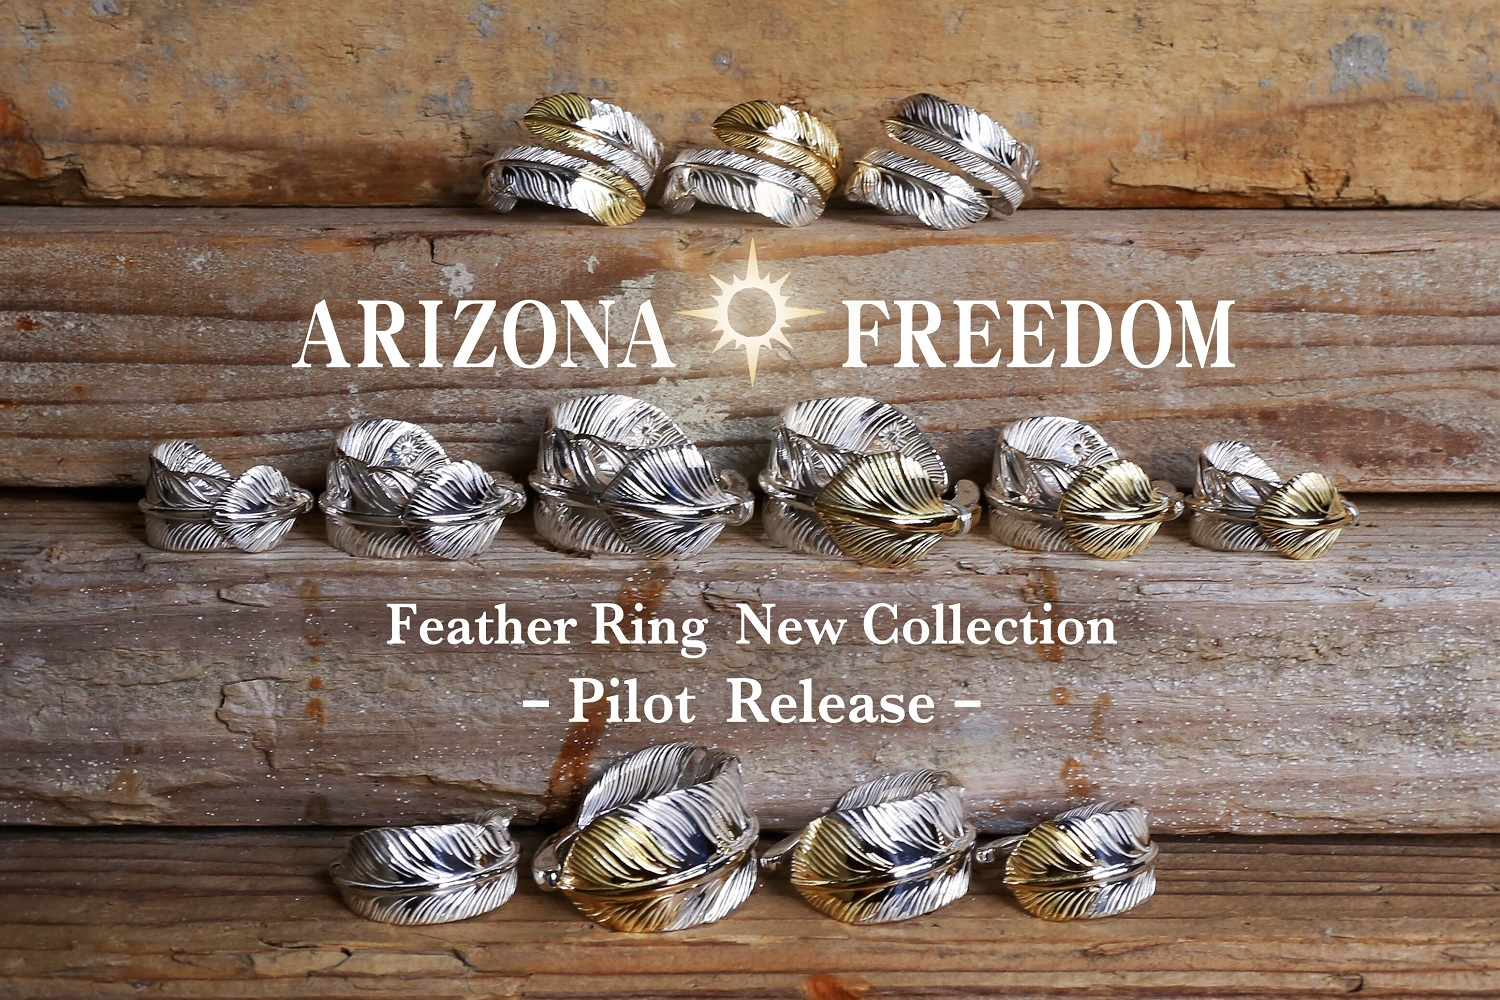 Feather Ring New Collection